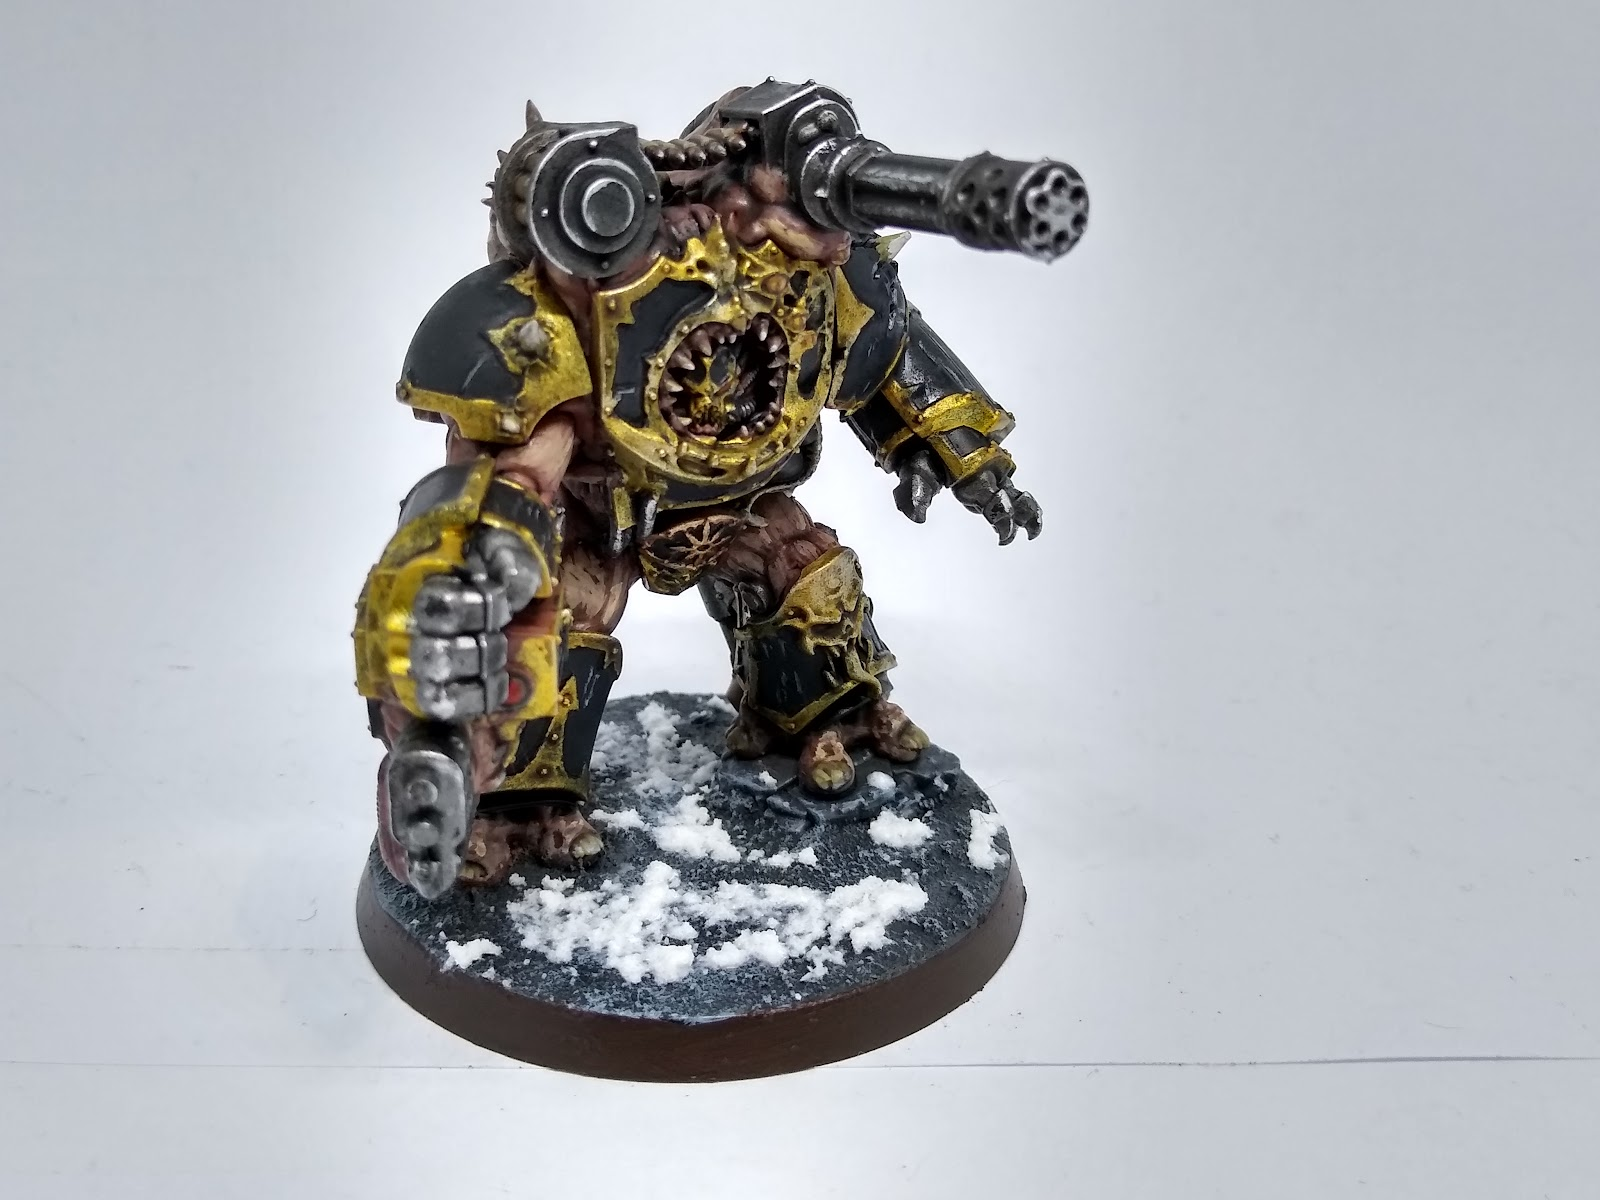 A model Obliterator, a massive warrior with multiple large guns, painted in black and gold with pale flesh.